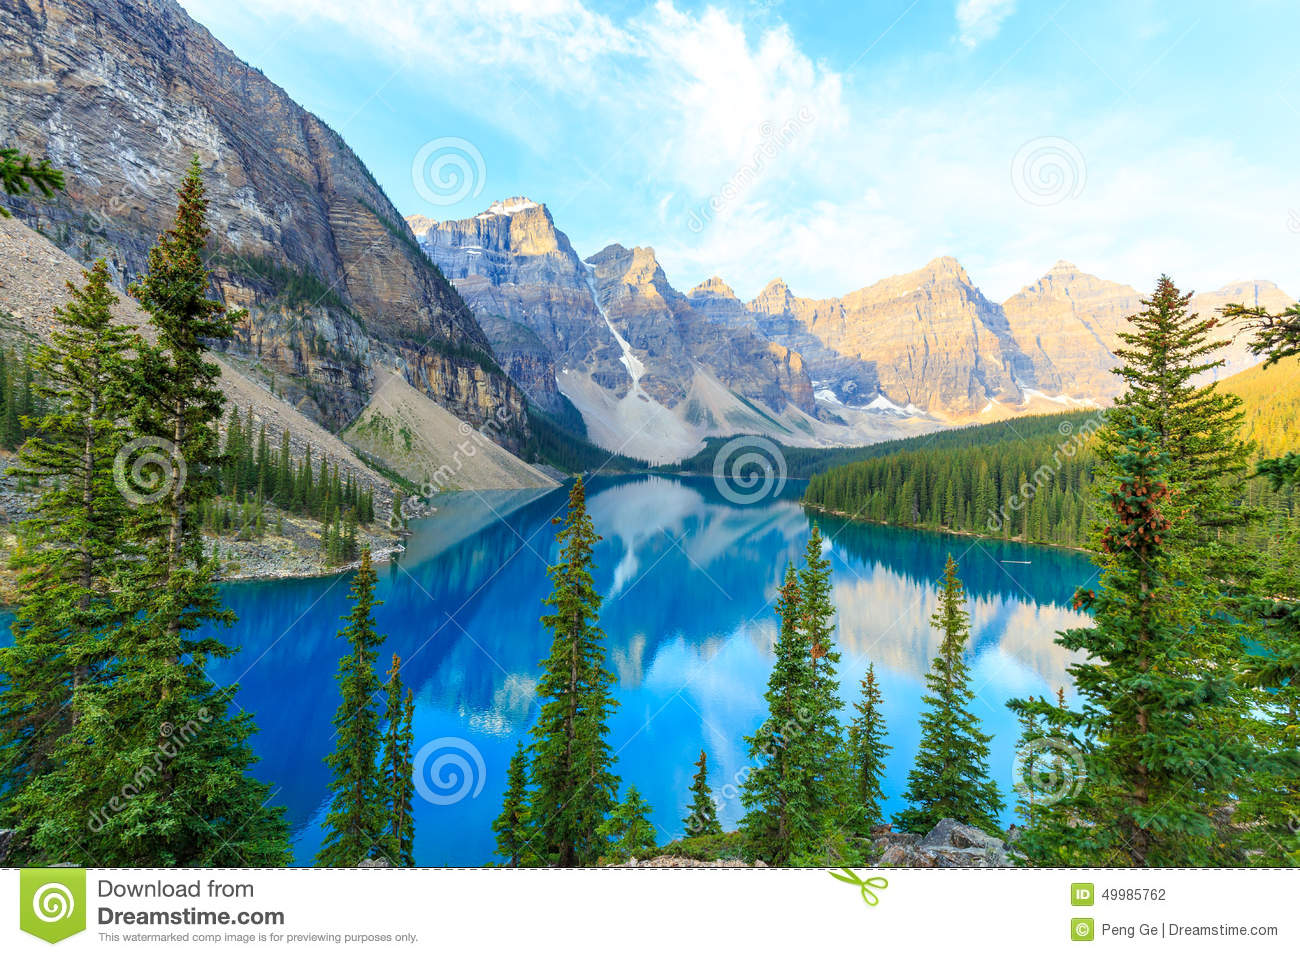 Idyllic Moraine Lake in Banff National Park, Canadian Rockies.